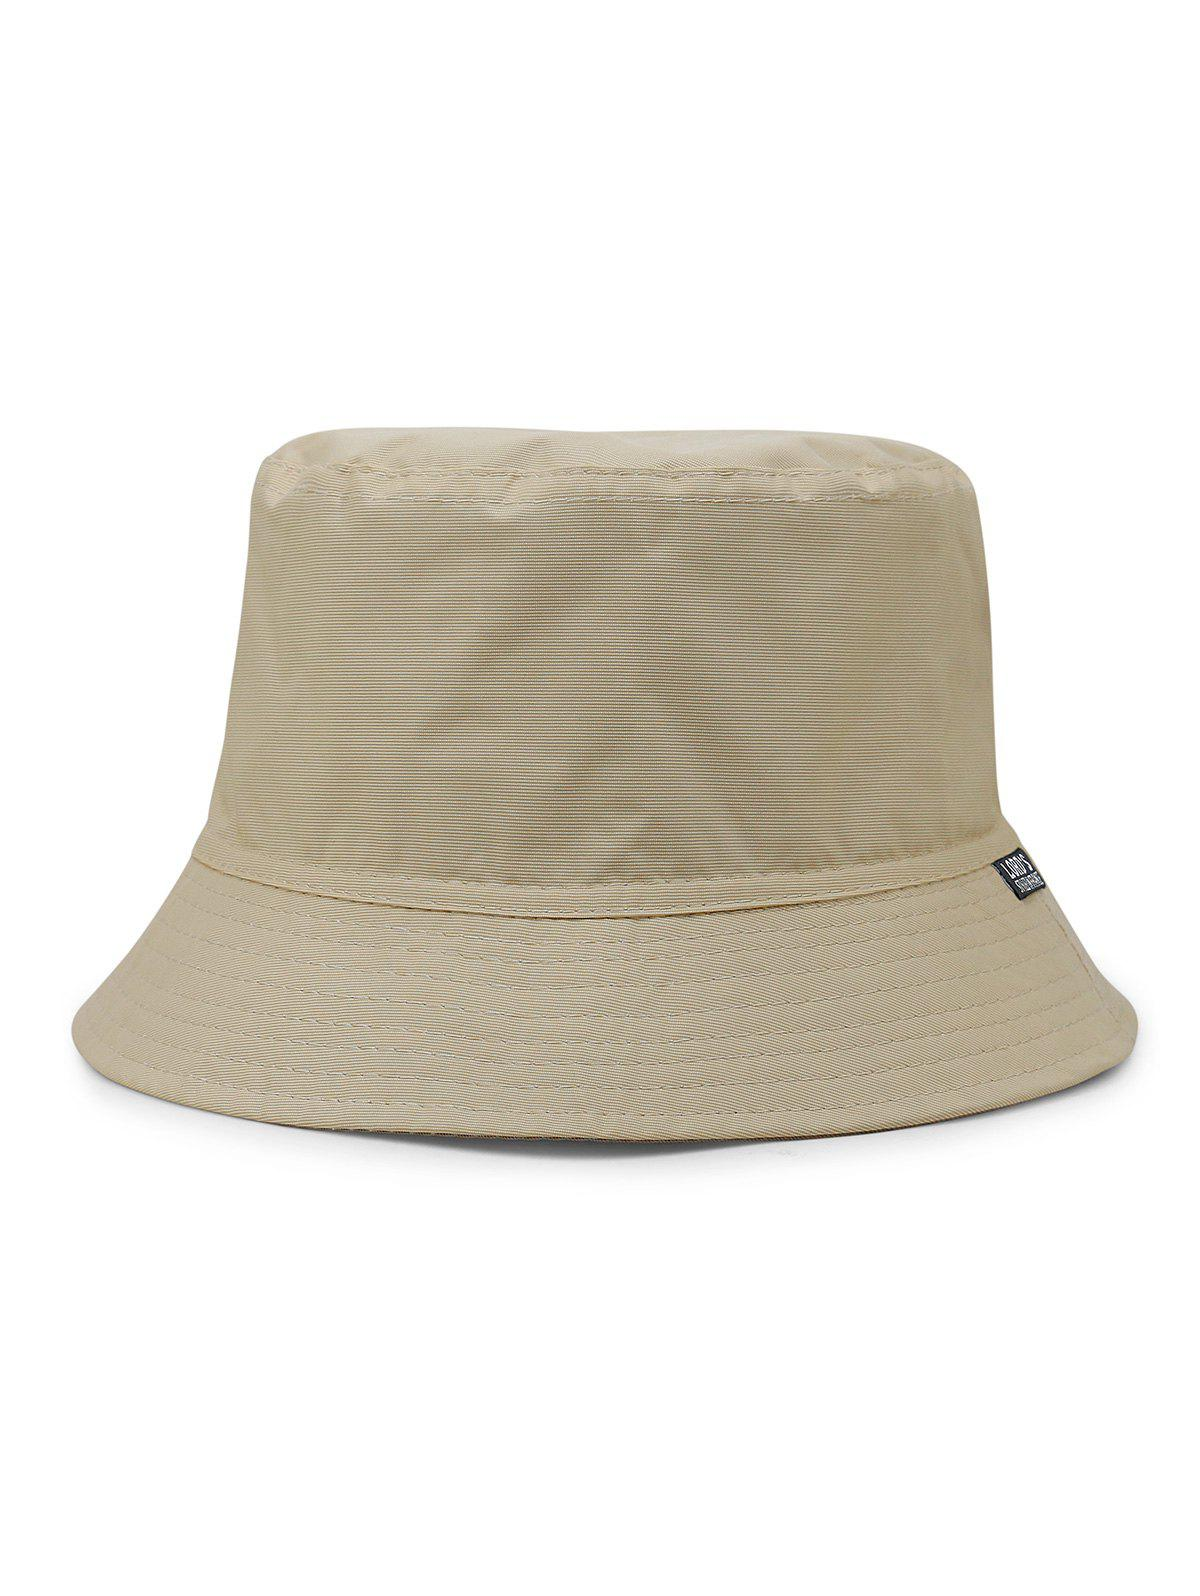 Unique Solid Color Breathable Summer Hat